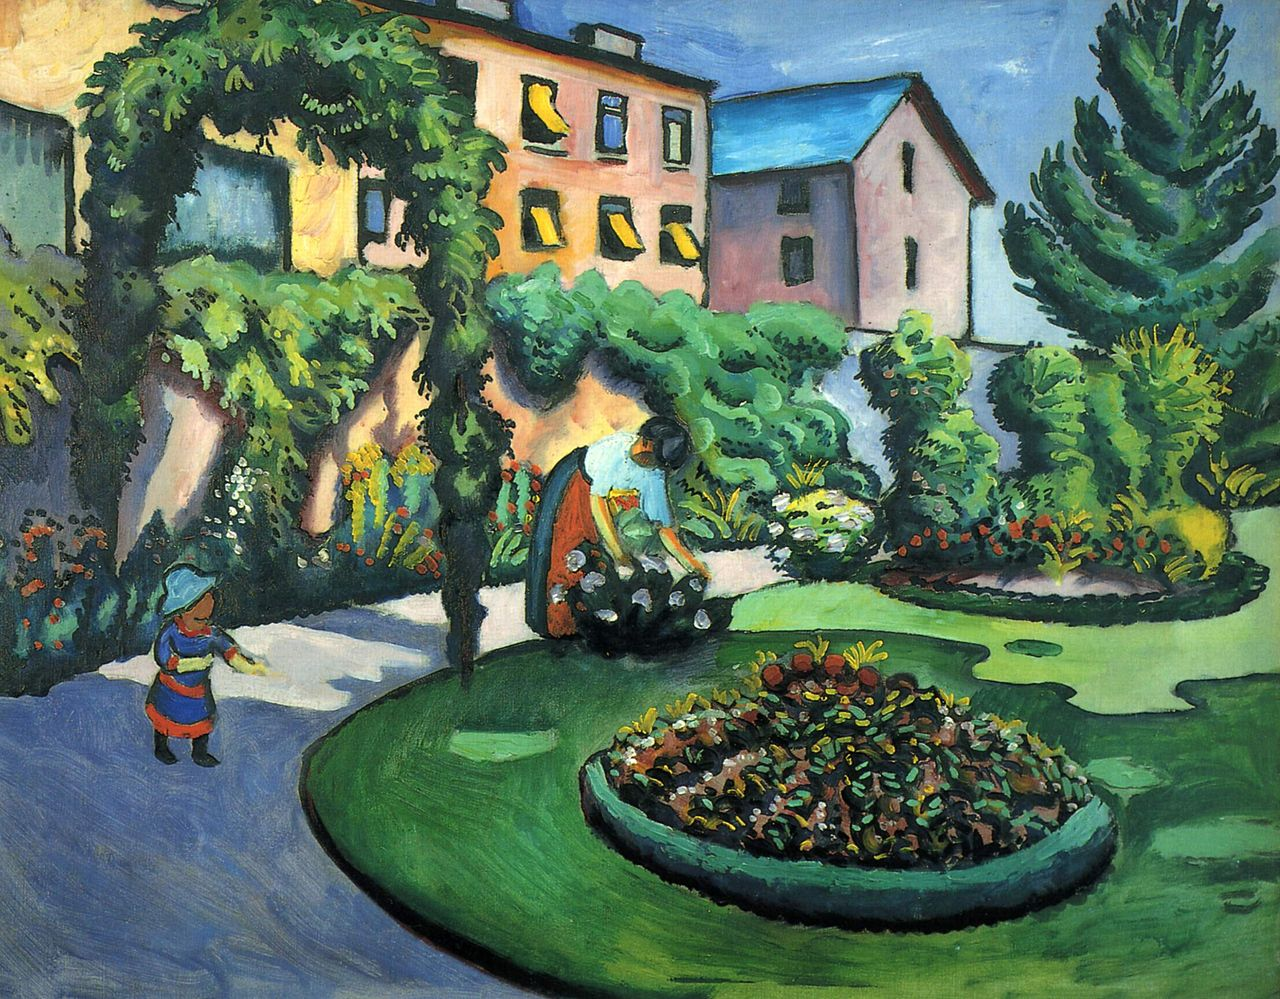 German Expressionist painter August Macke